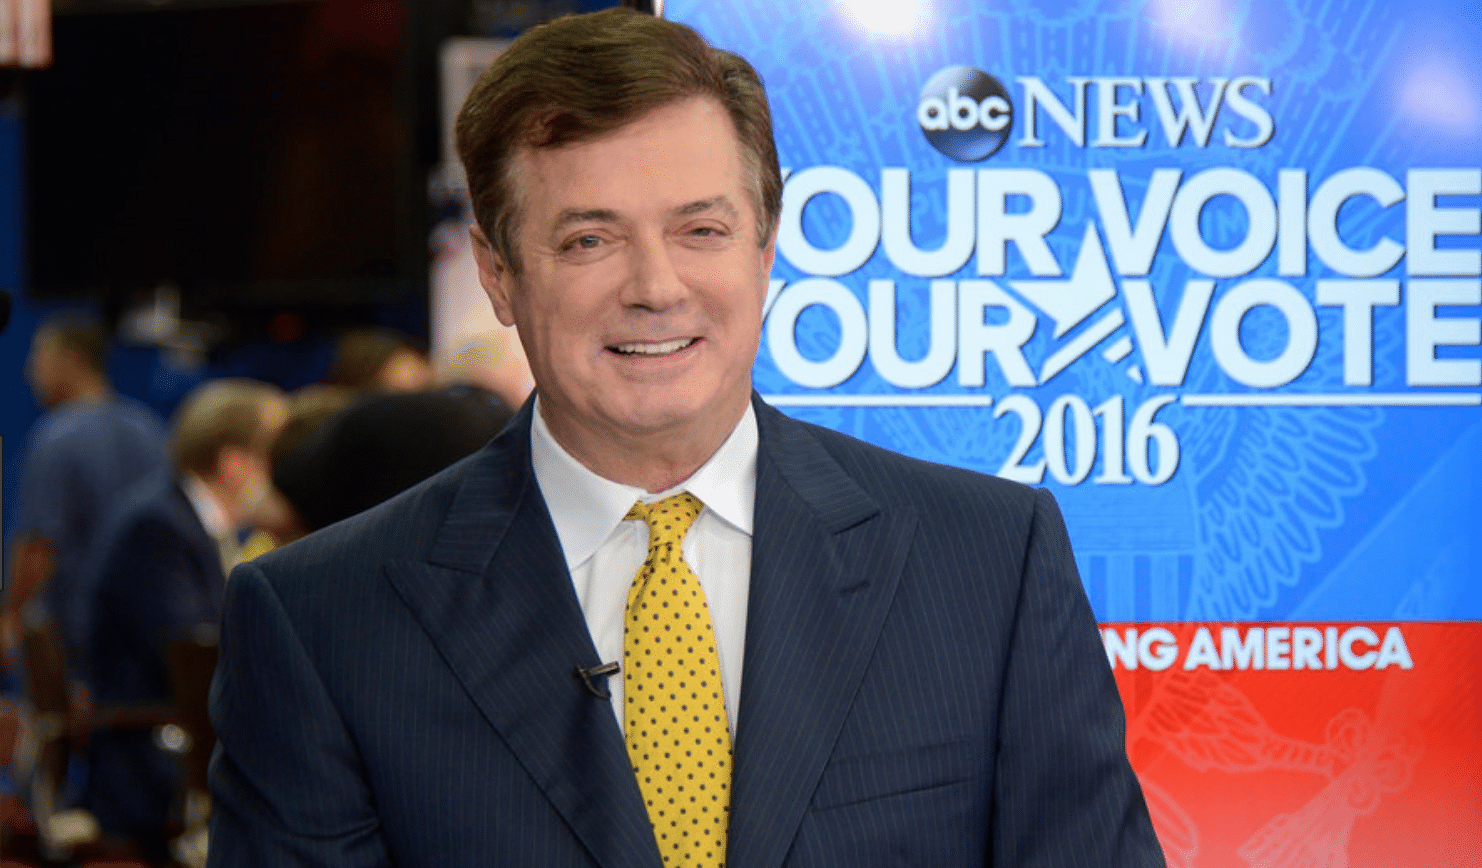 Mueller Files List of 35 Potential Witnesses for Paul Manafort Trial